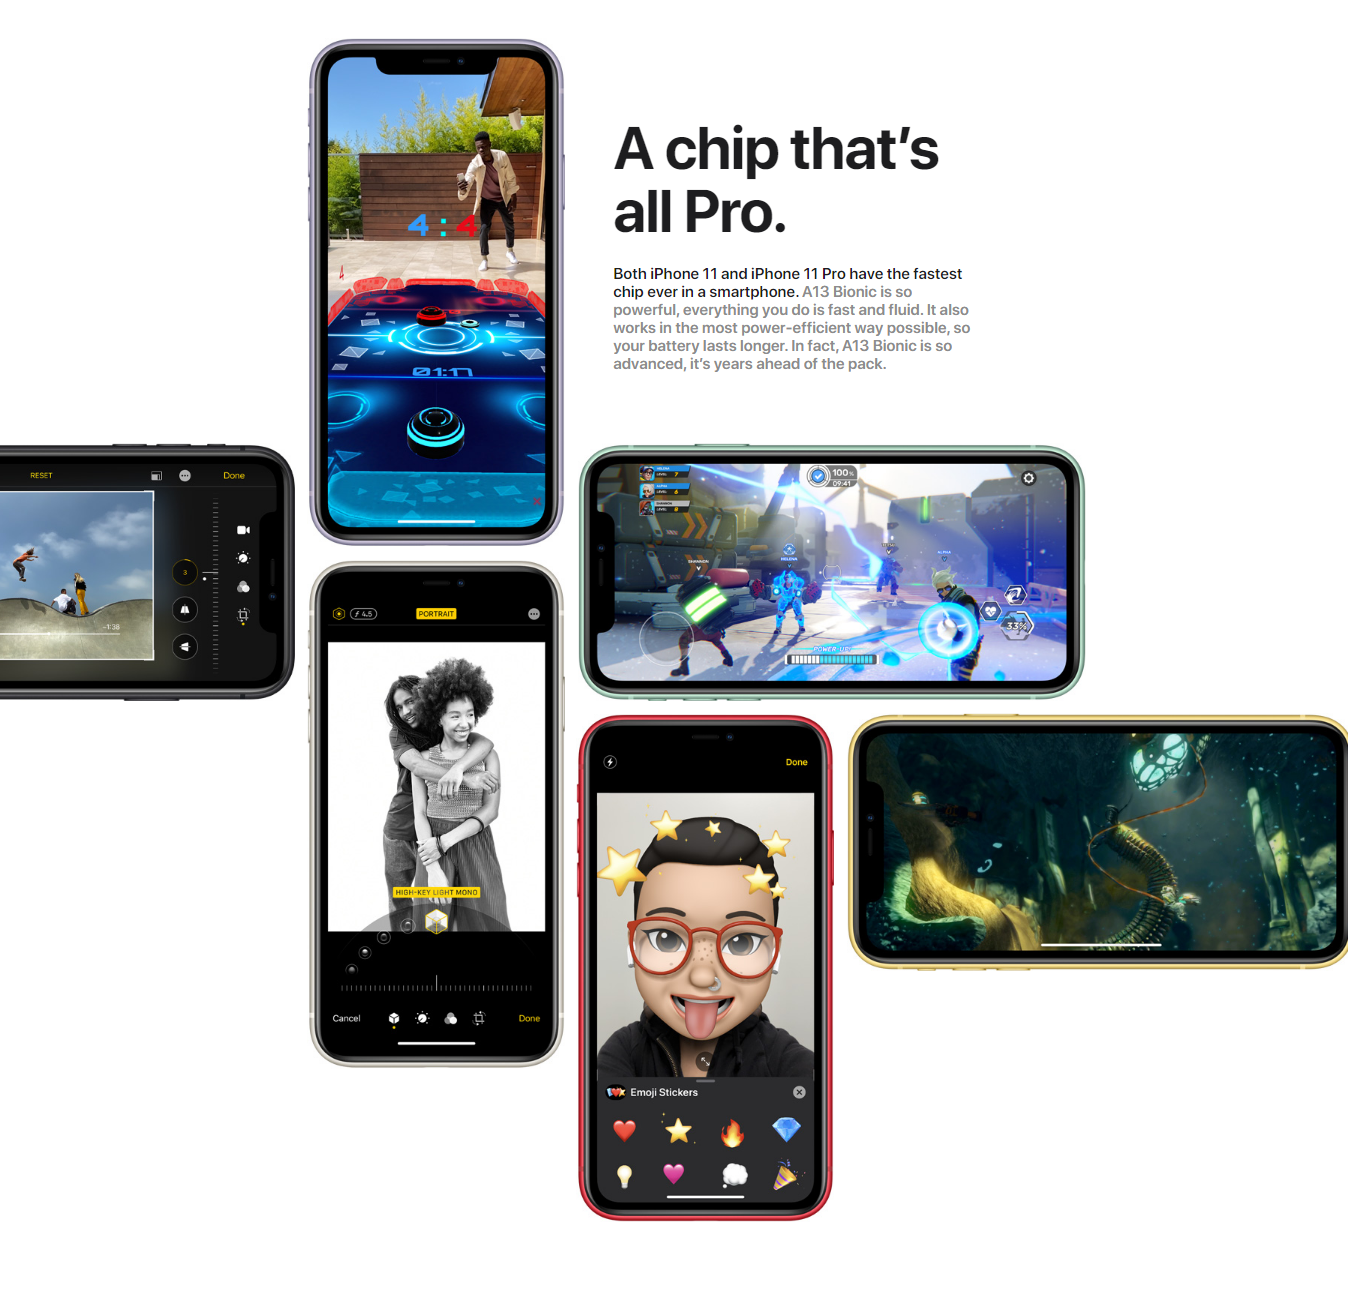 iPhone 11 iOS improved features